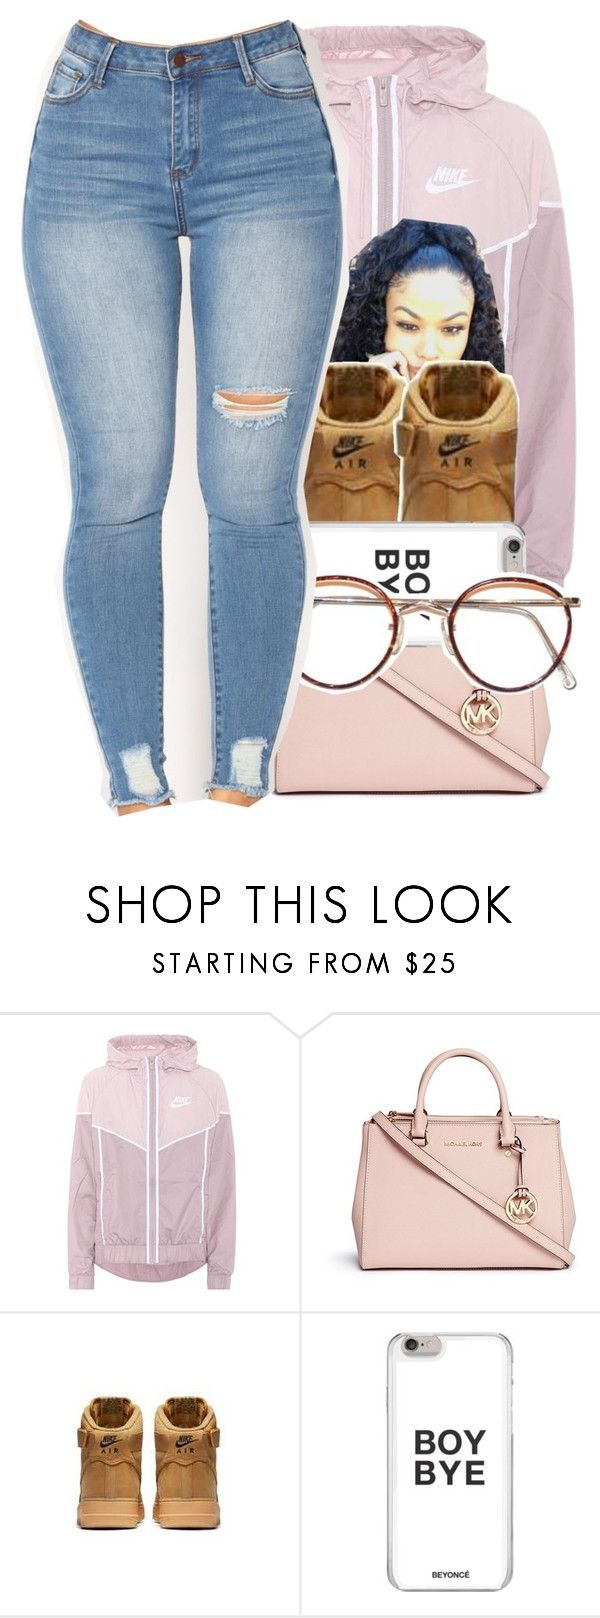 """""""had the worst day """" by blqckfinity ❤ liked on Polyvore featuring NIKE and Michael Kors"""